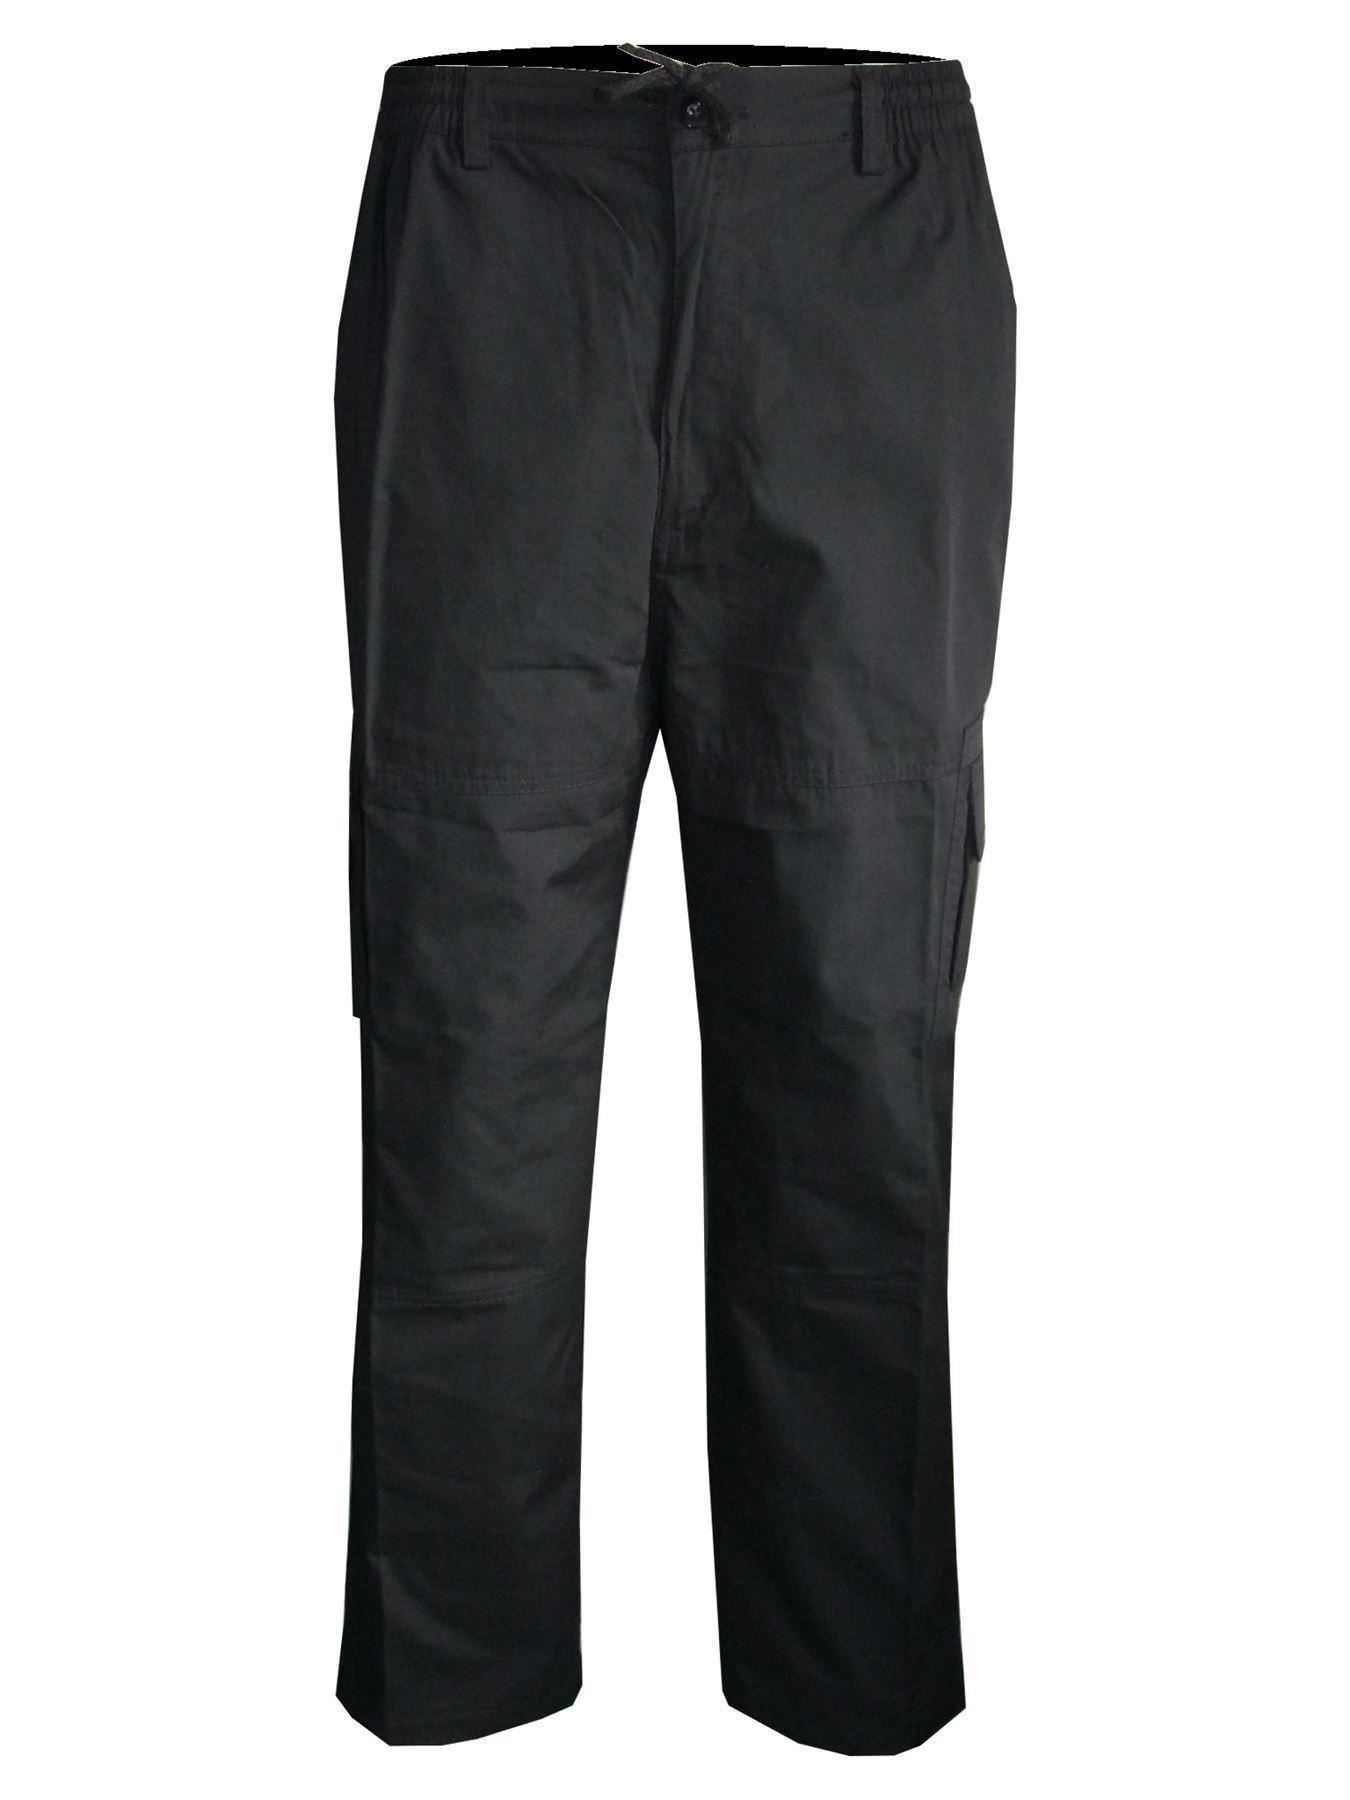 Men-Straight-Trousers-Cargo-Combat-Cotton-Elasticated-Zip-Fly-Casual-Pants-M-3XL thumbnail 6